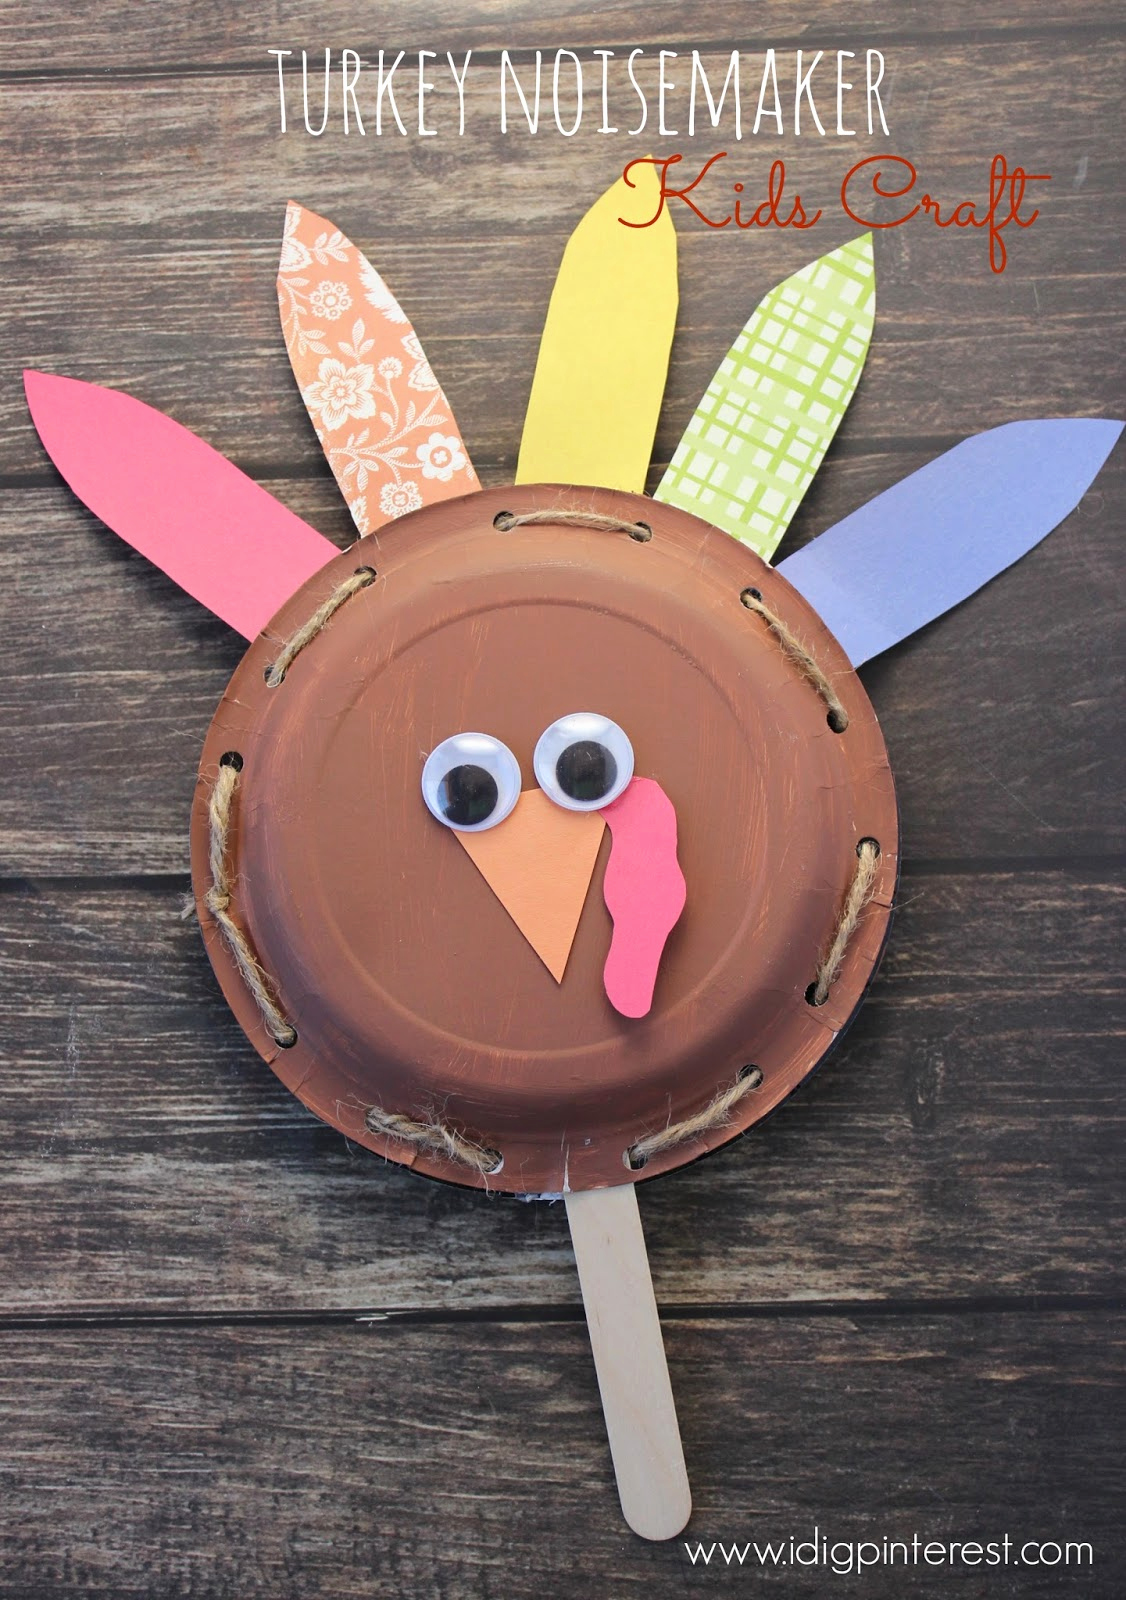 Construction Paper Crafts for Adults Unique Turkey Noisemaker Thanksgiving Kids Craft I Dig Pinterest